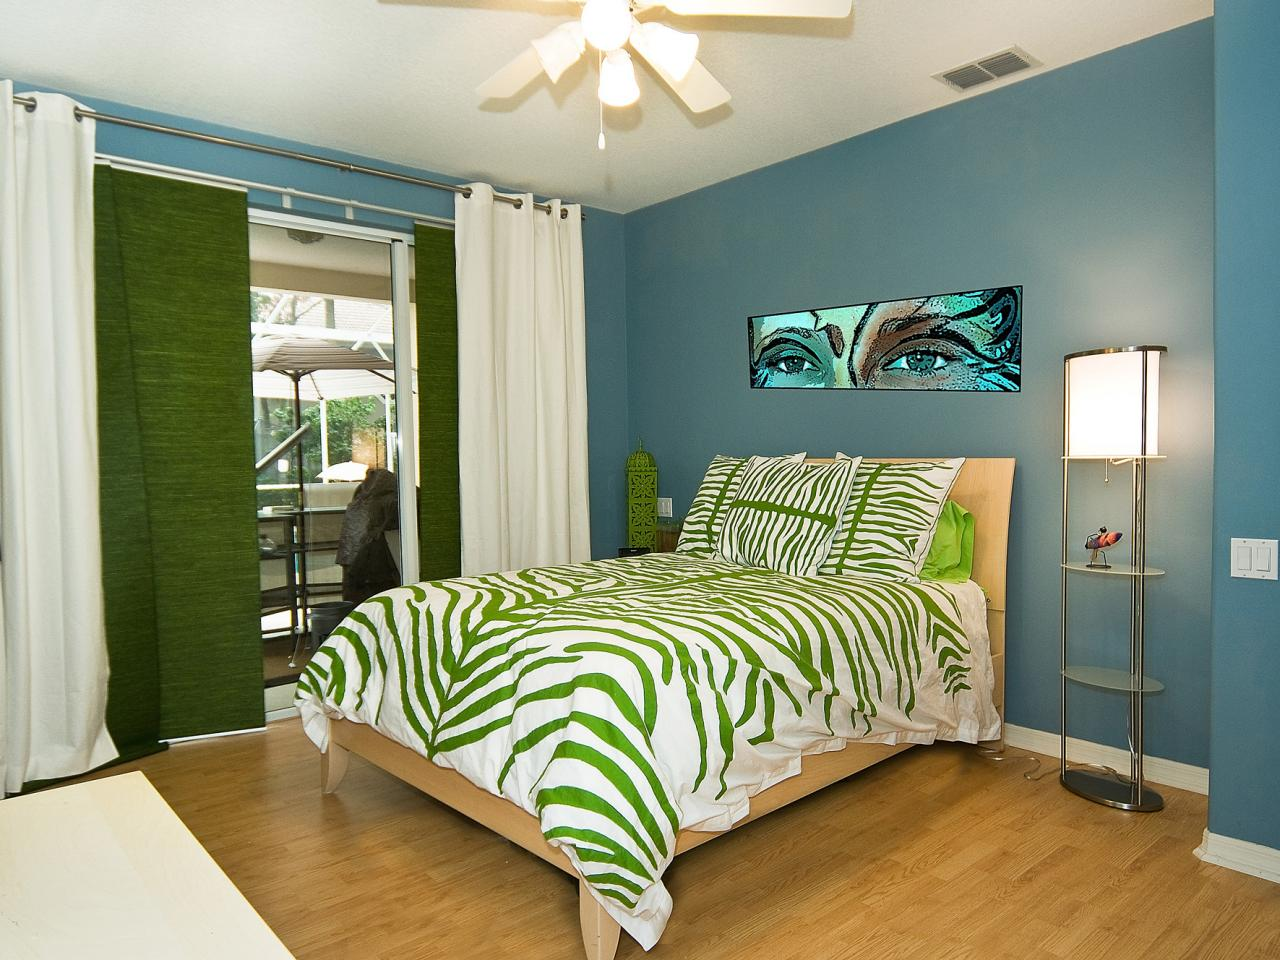 Sassy and sophisticated teen and tween bedroom ideas Teen girl bedroom ideas